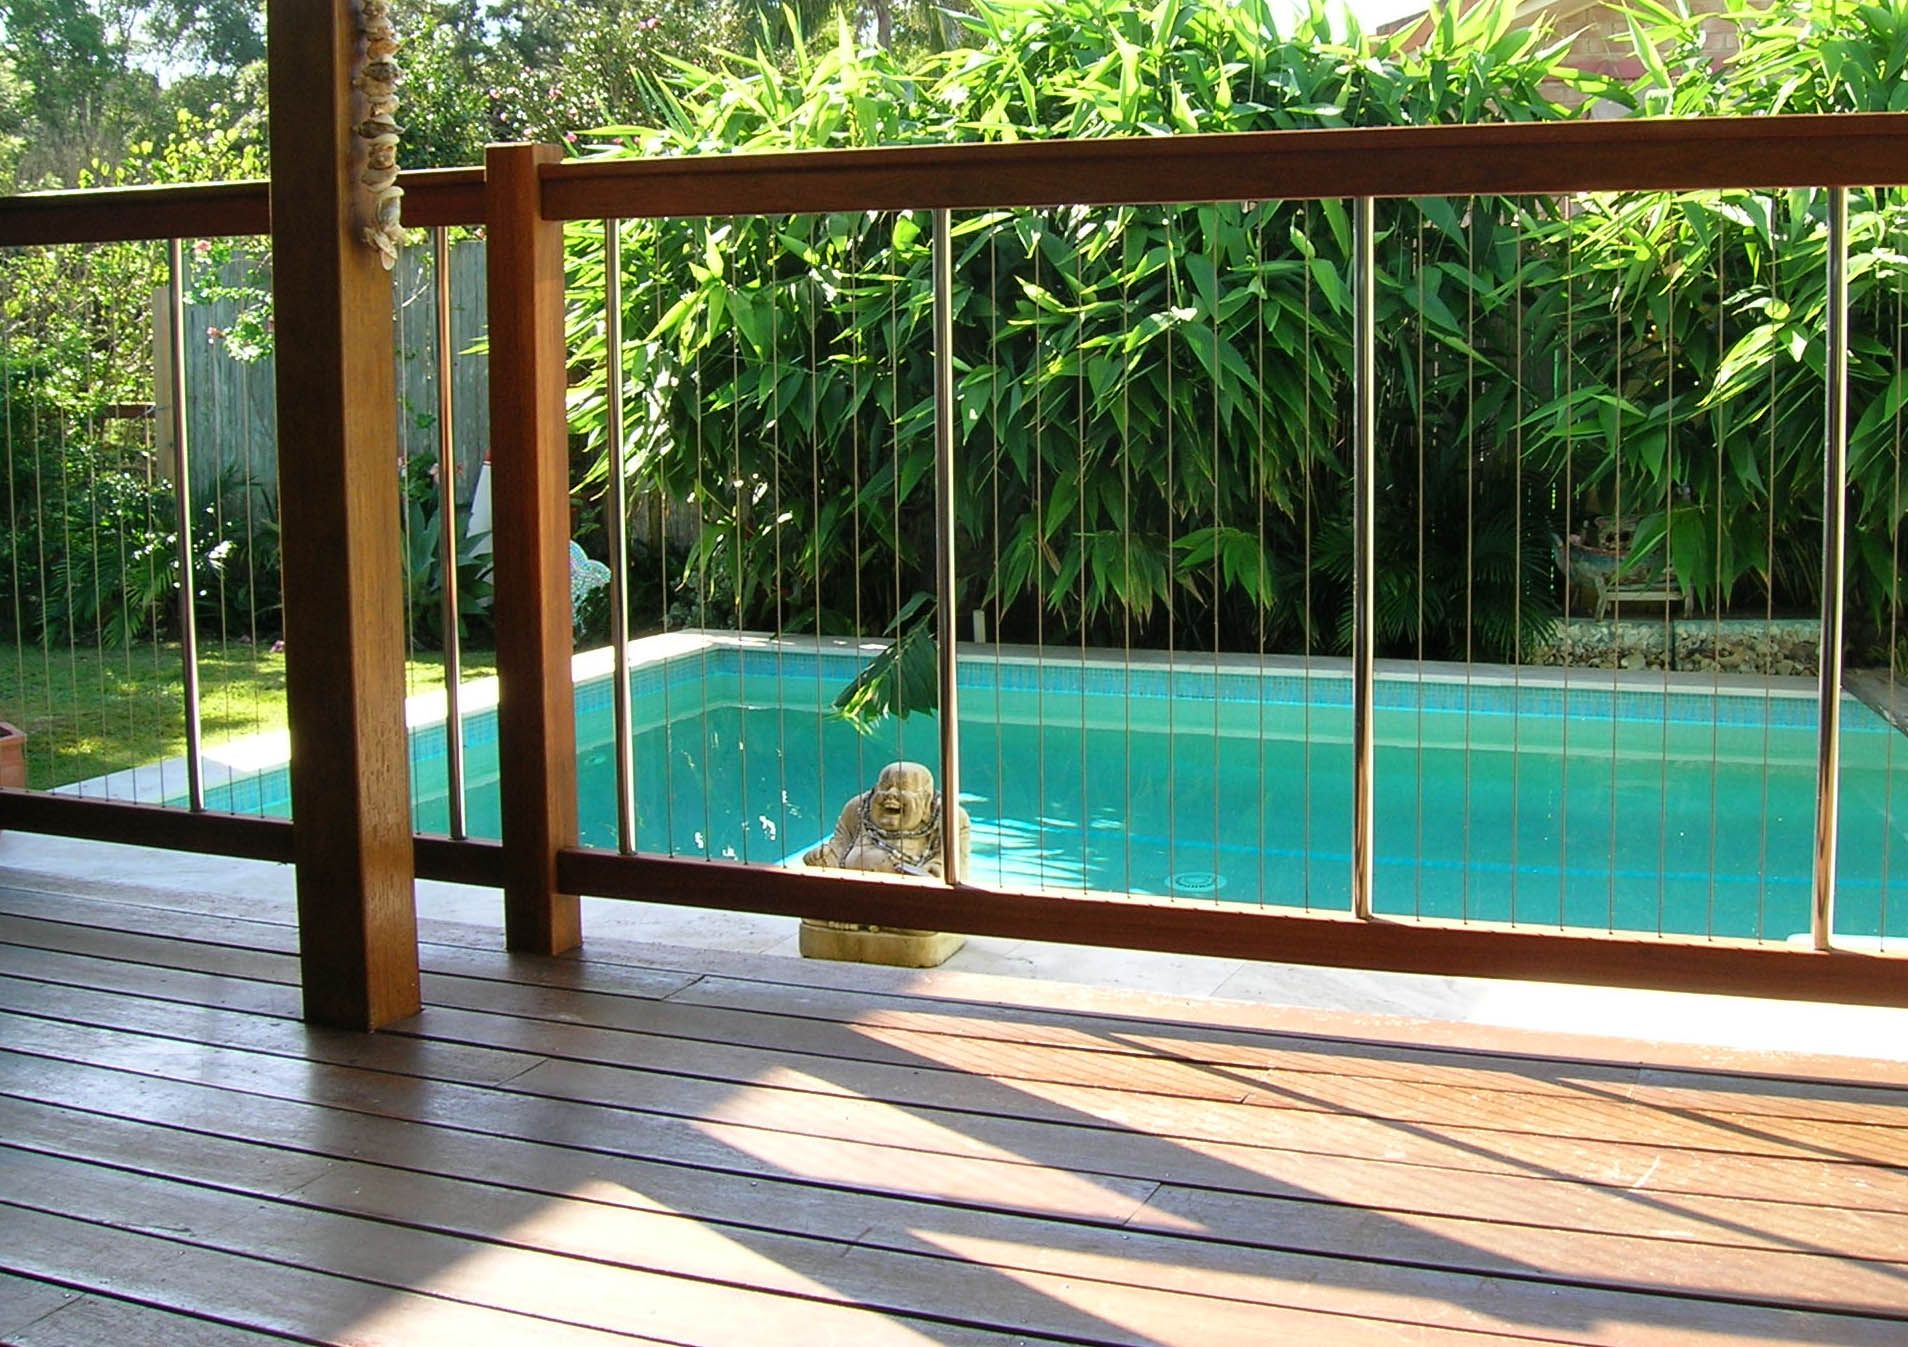 Enchanting Pool Fence Design Ideas With Modern Architecture With ...